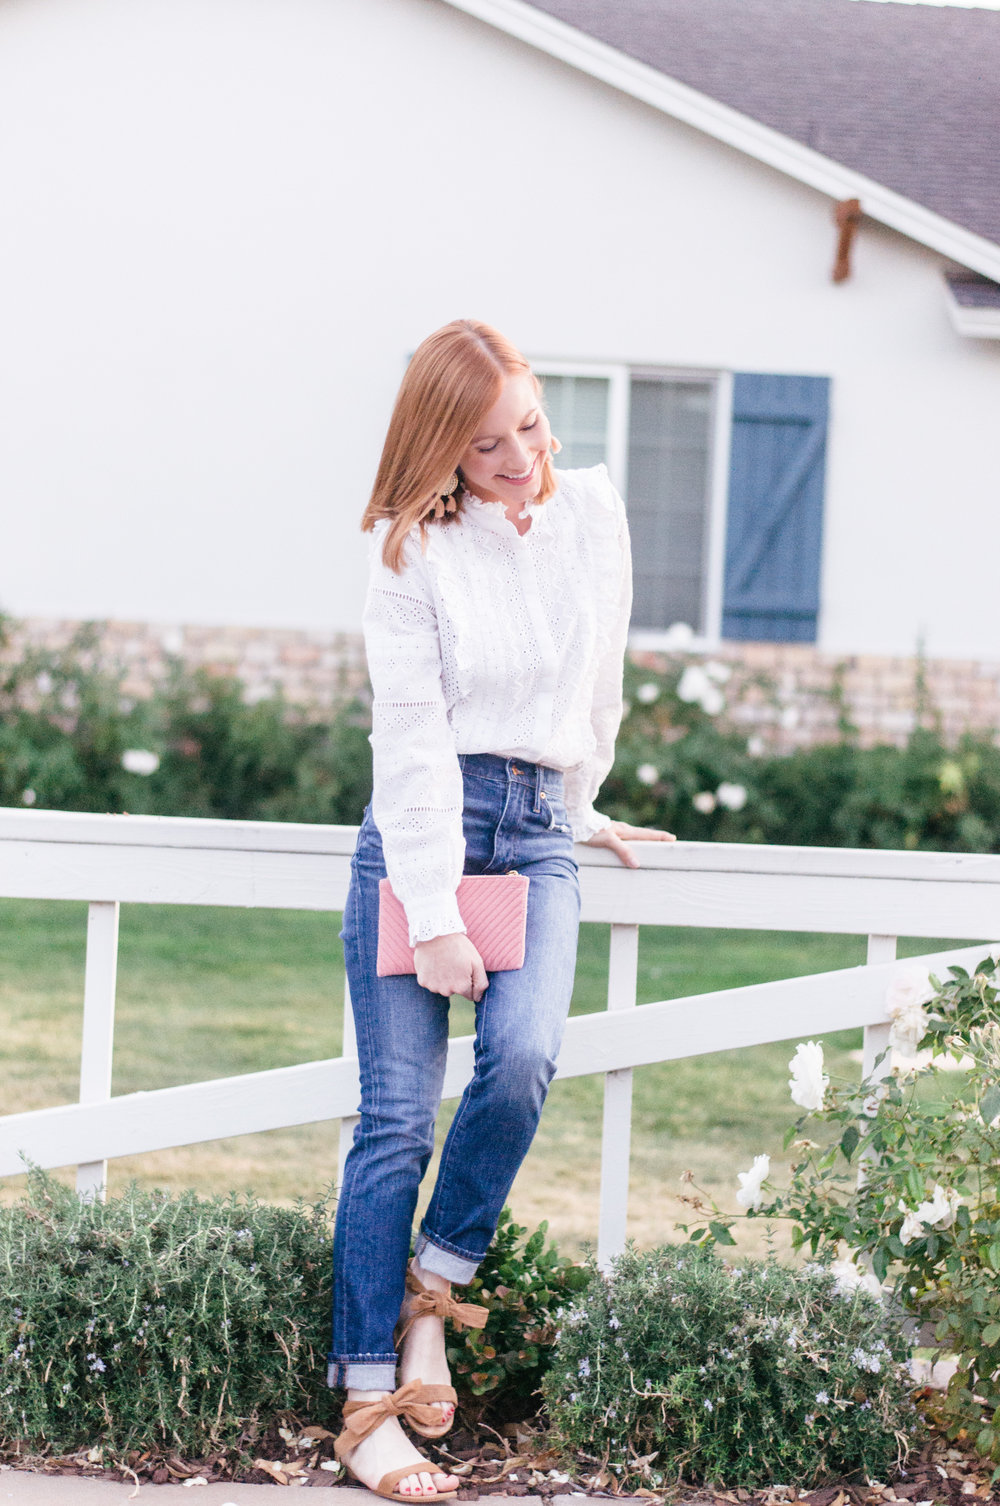 Cute Spring Outfit Ideas With Jeans